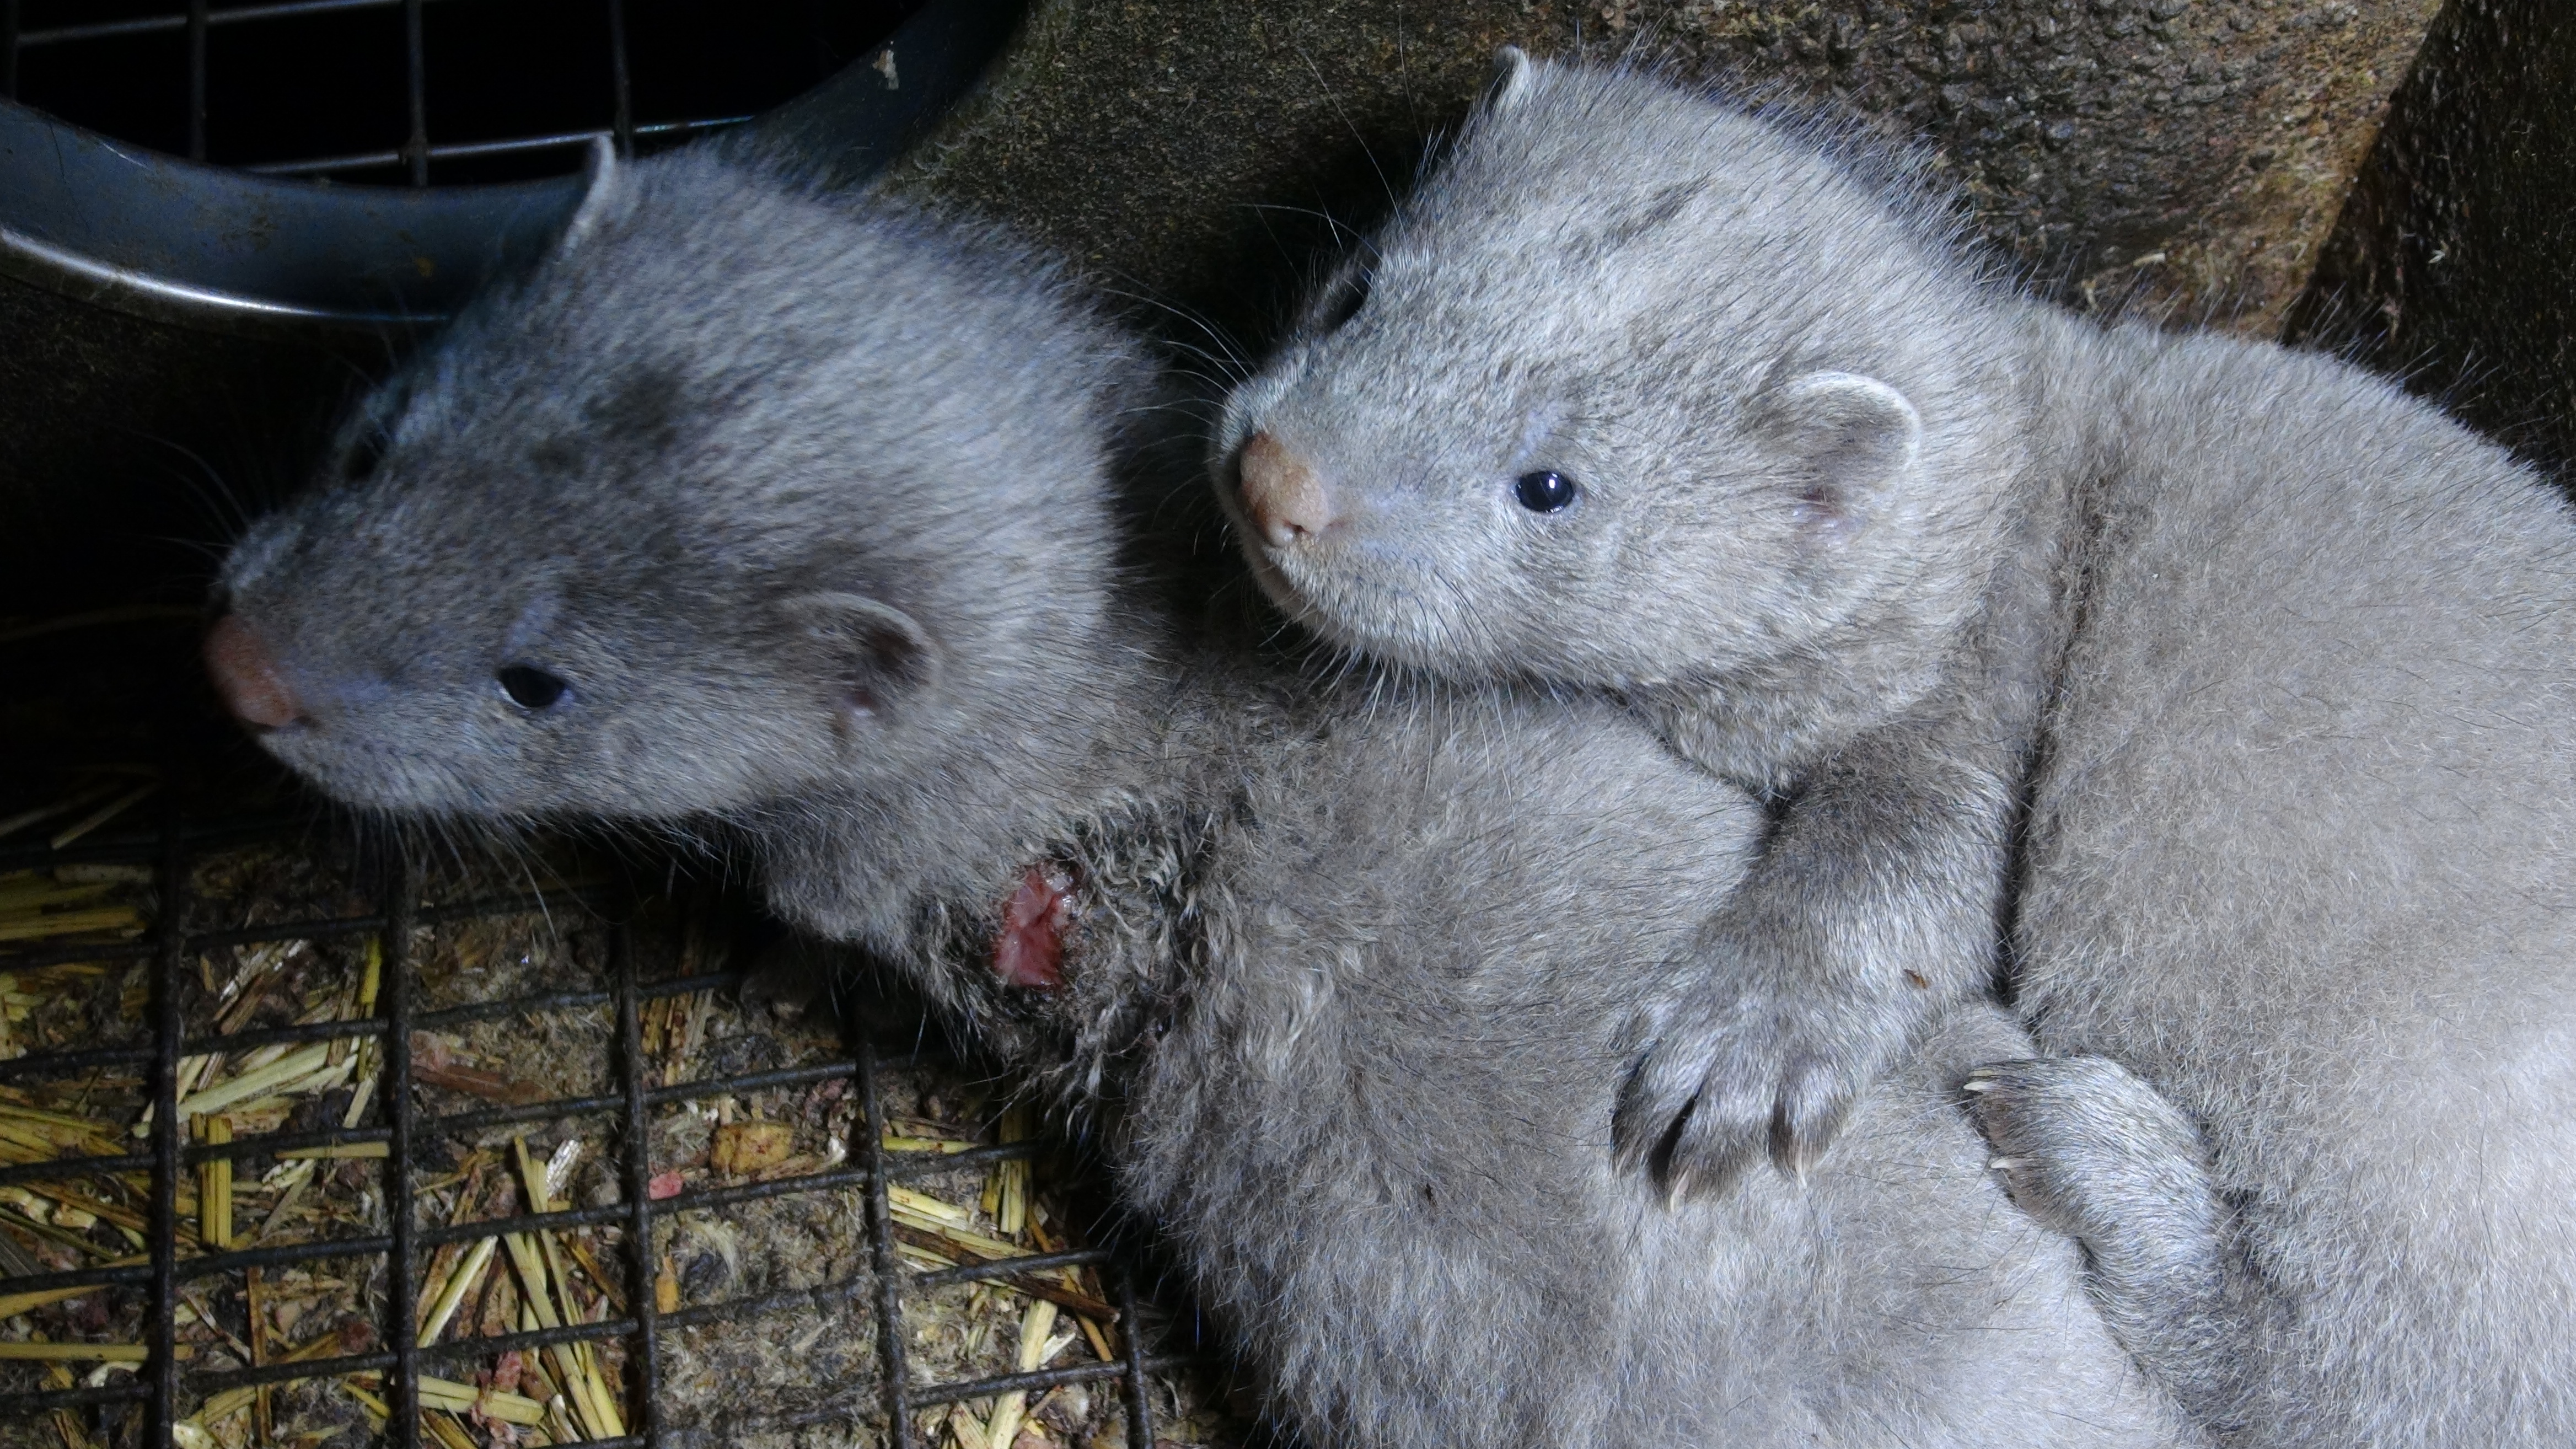 Where does fur come from?